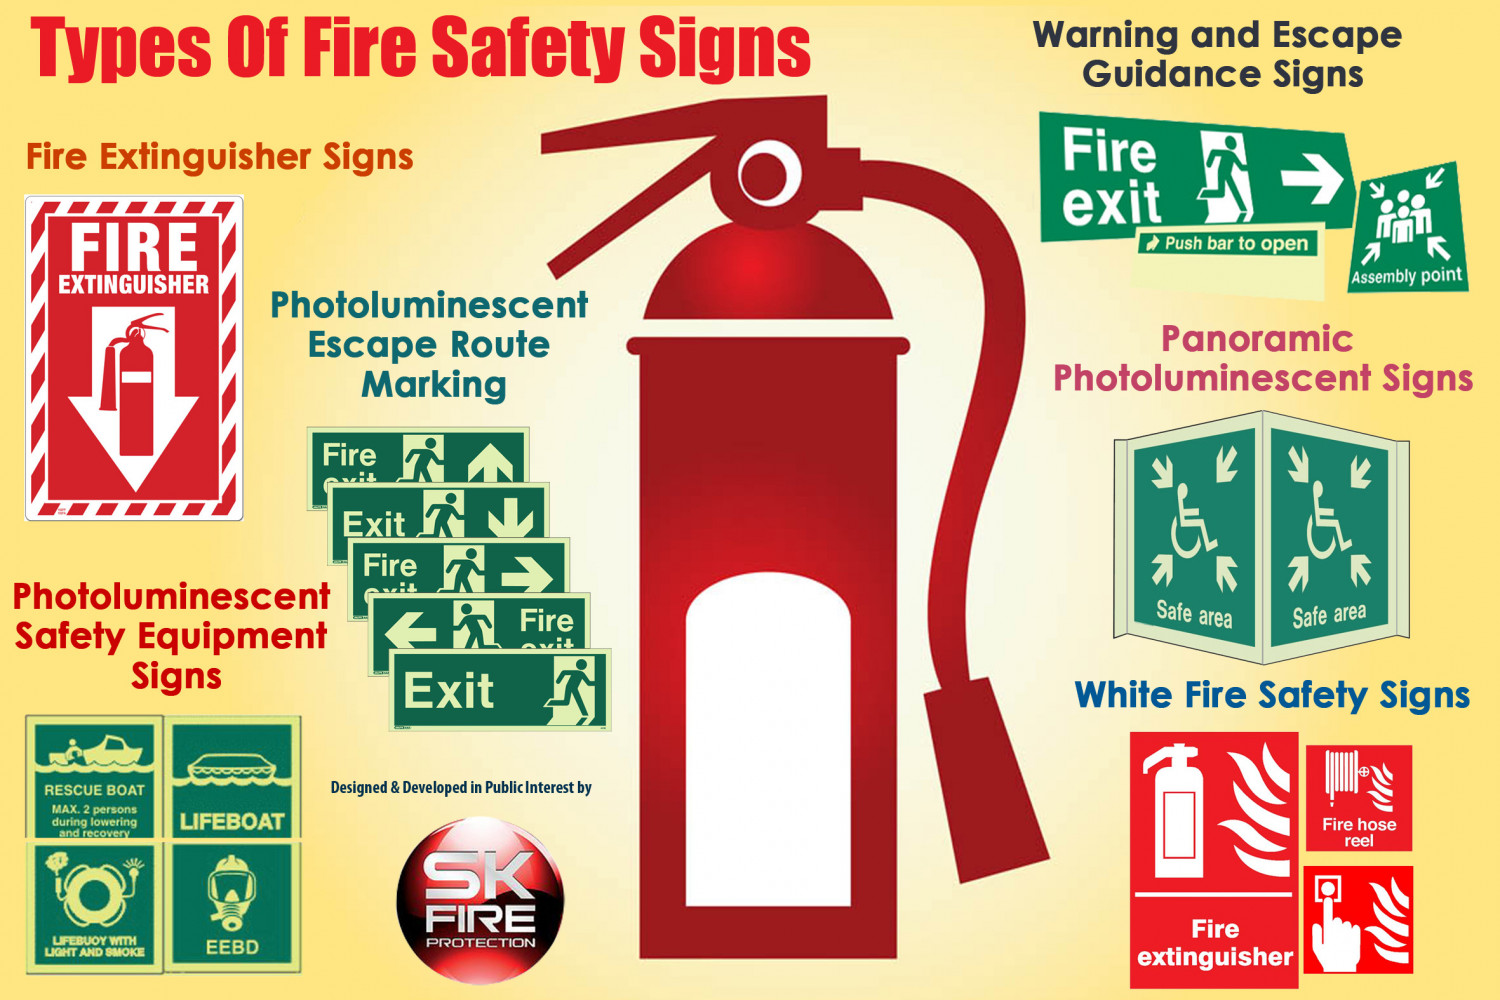 Types of fire safety signs visual types of fire safety signs infographic thecheapjerseys Images